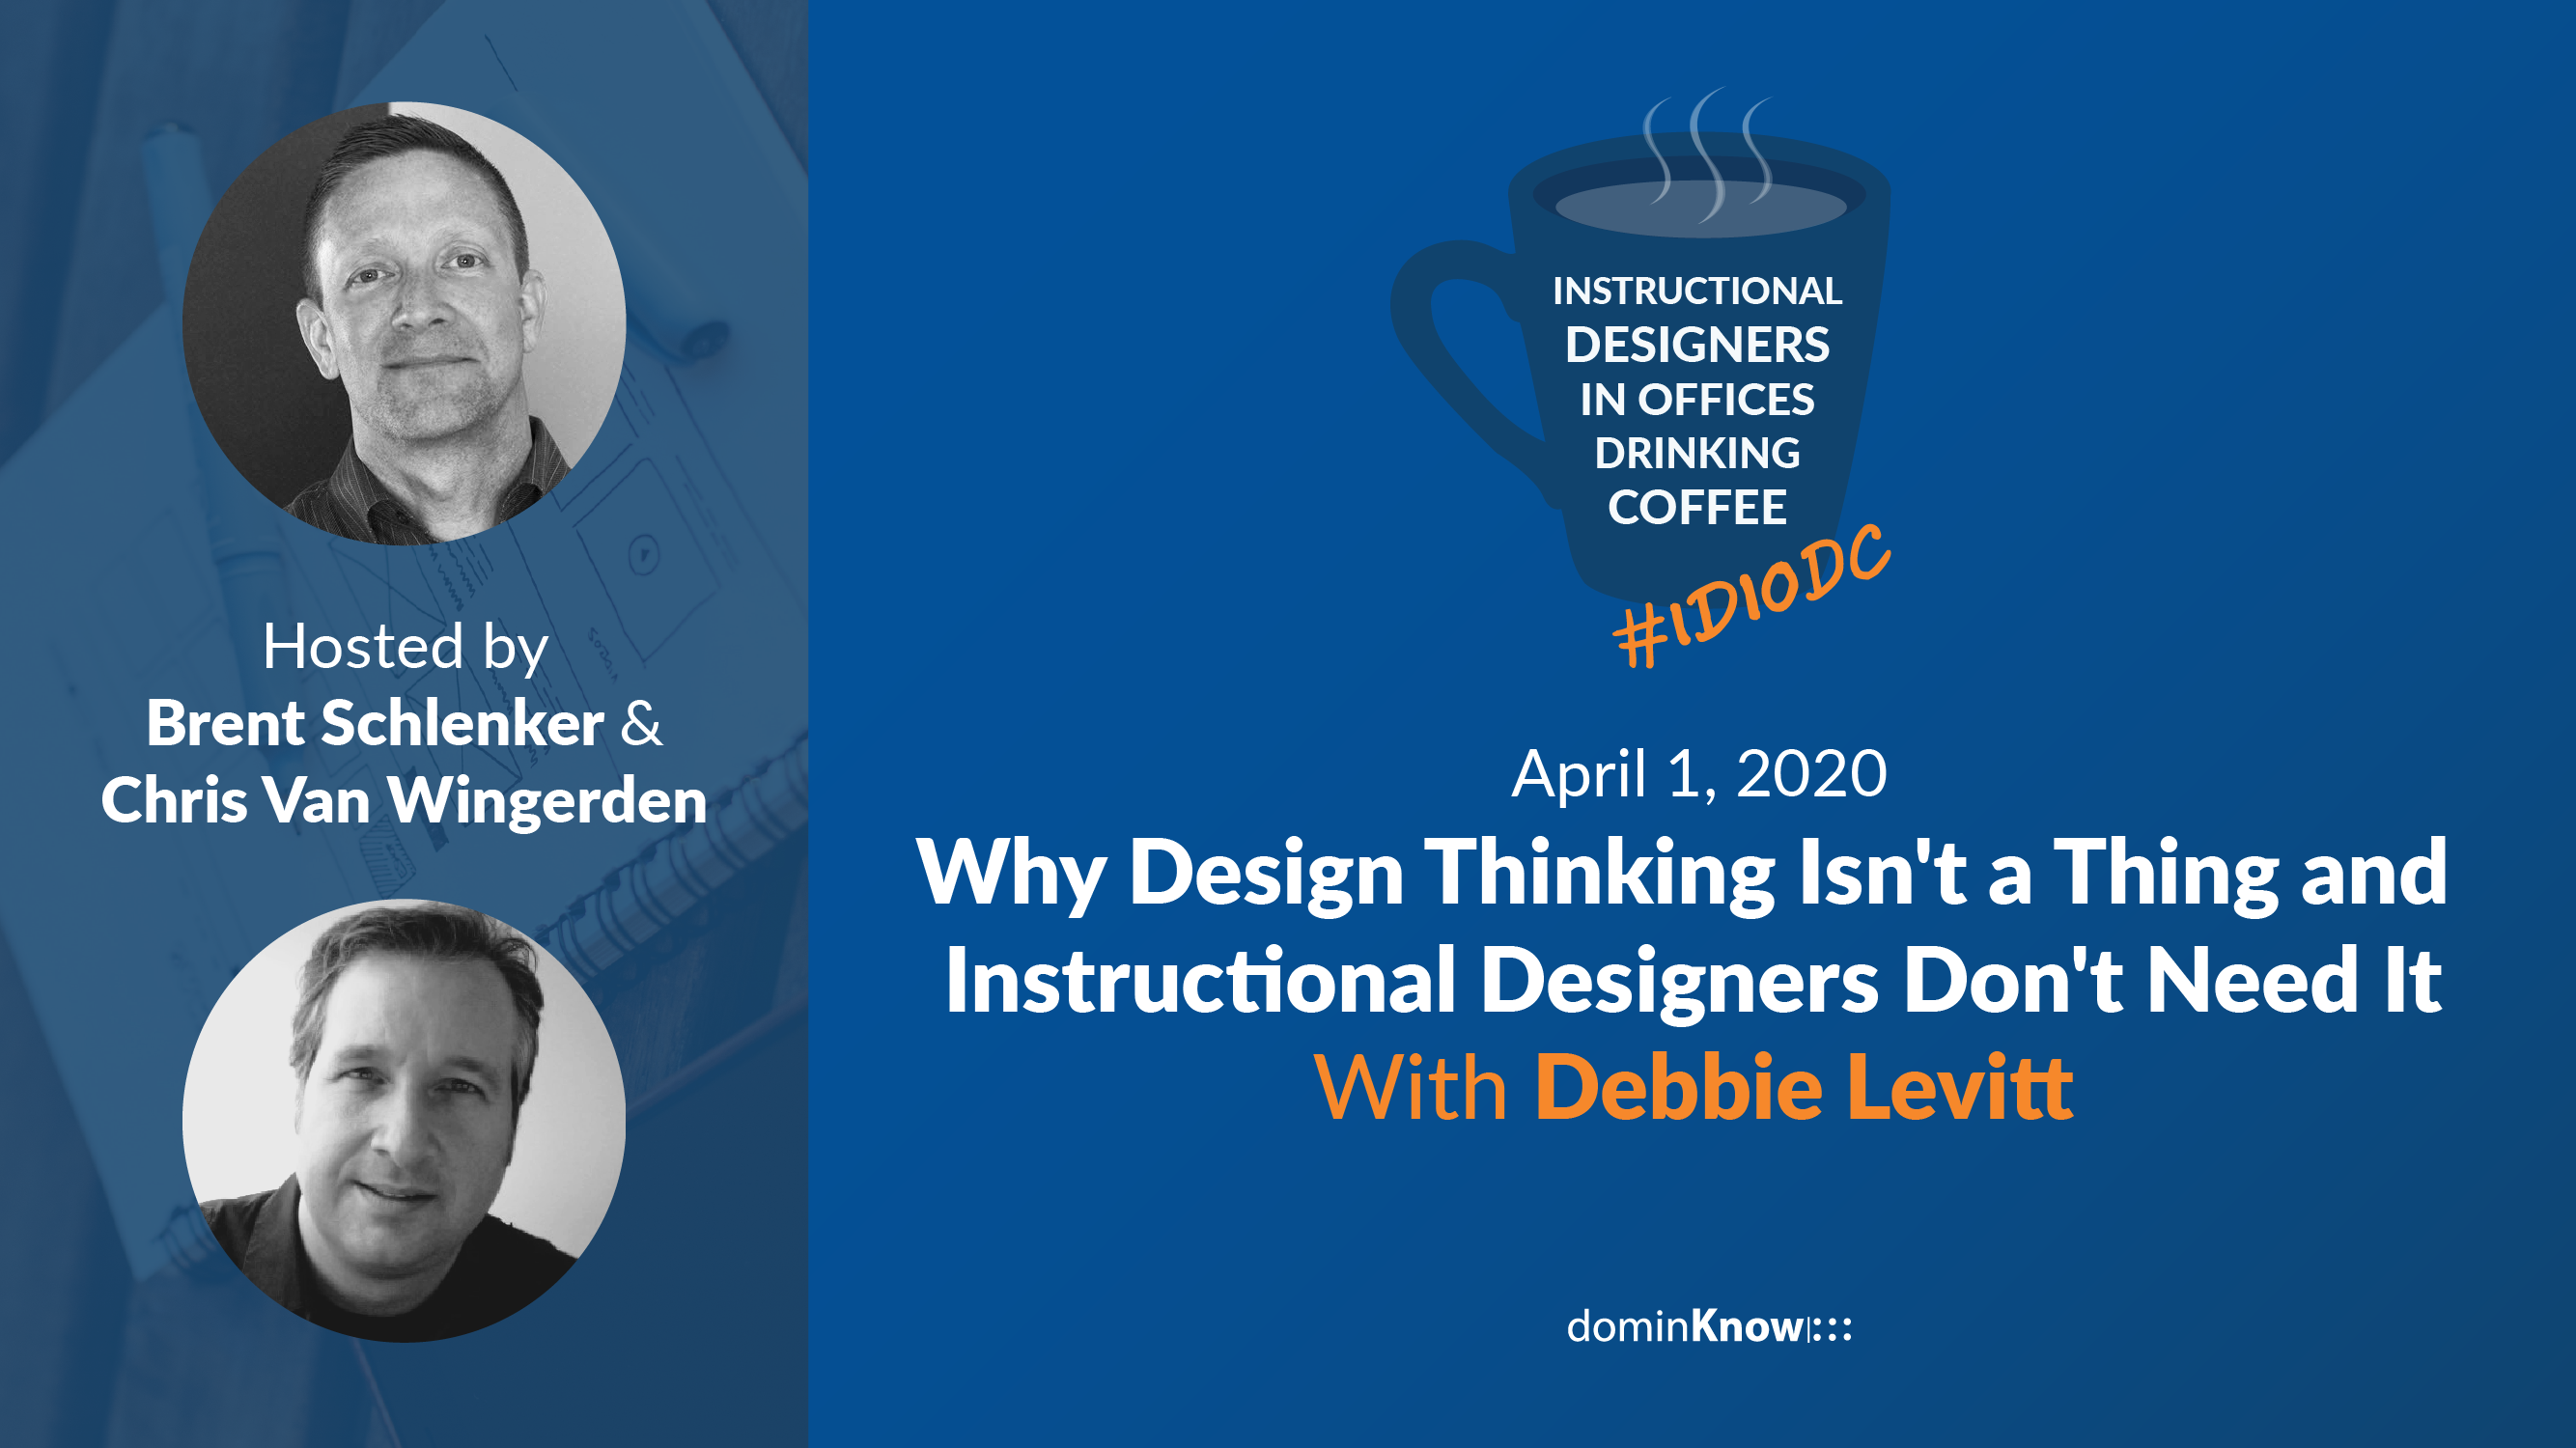 Debbie Levitt joins show hosts Brent Schlenker and Chris Van Wingerden for a session on why design thinking isn't all its cracked up to be.